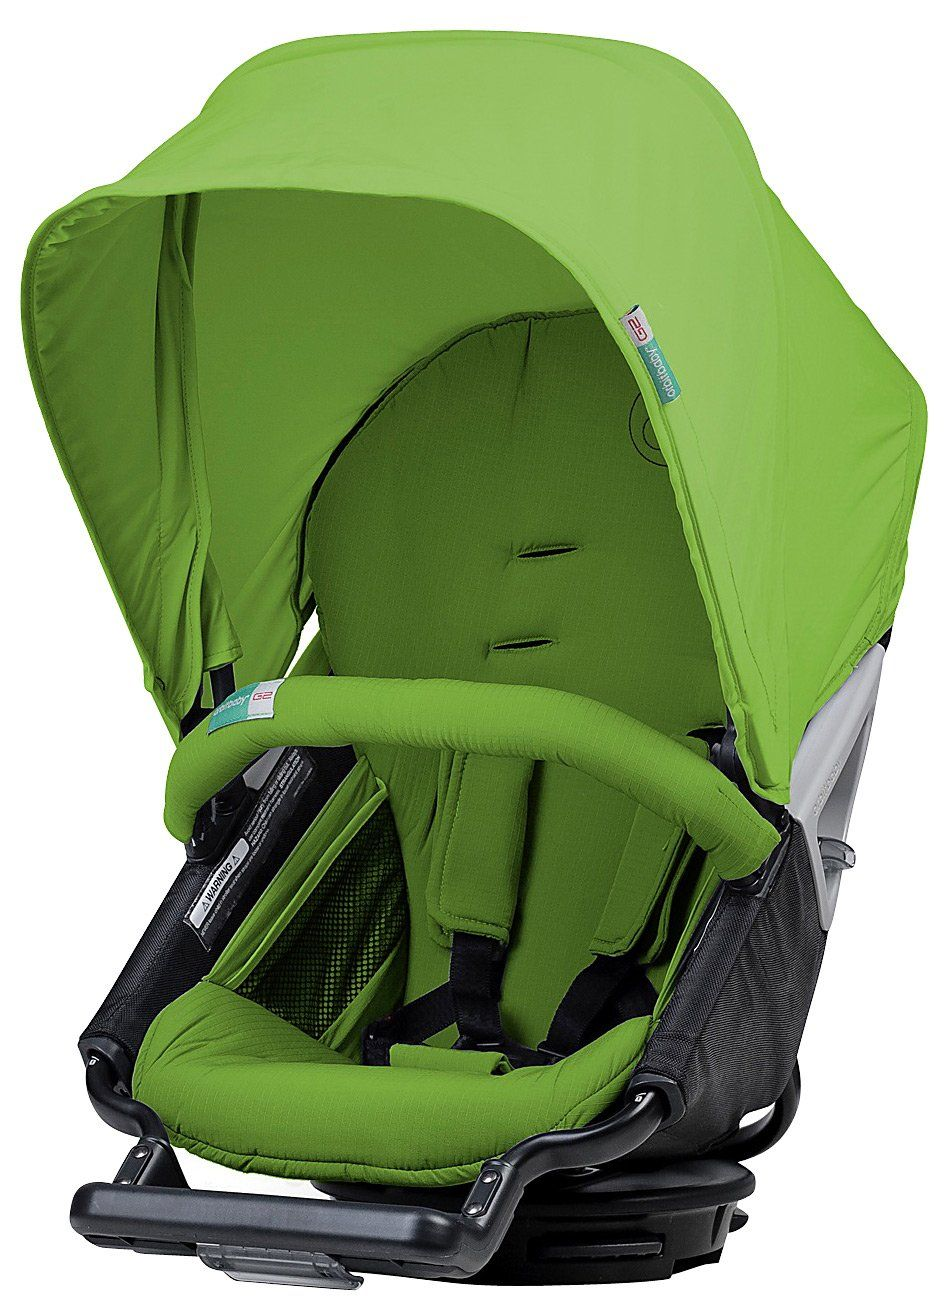 Orbit Baby Color Pack for Stroller Seat G2 Lime